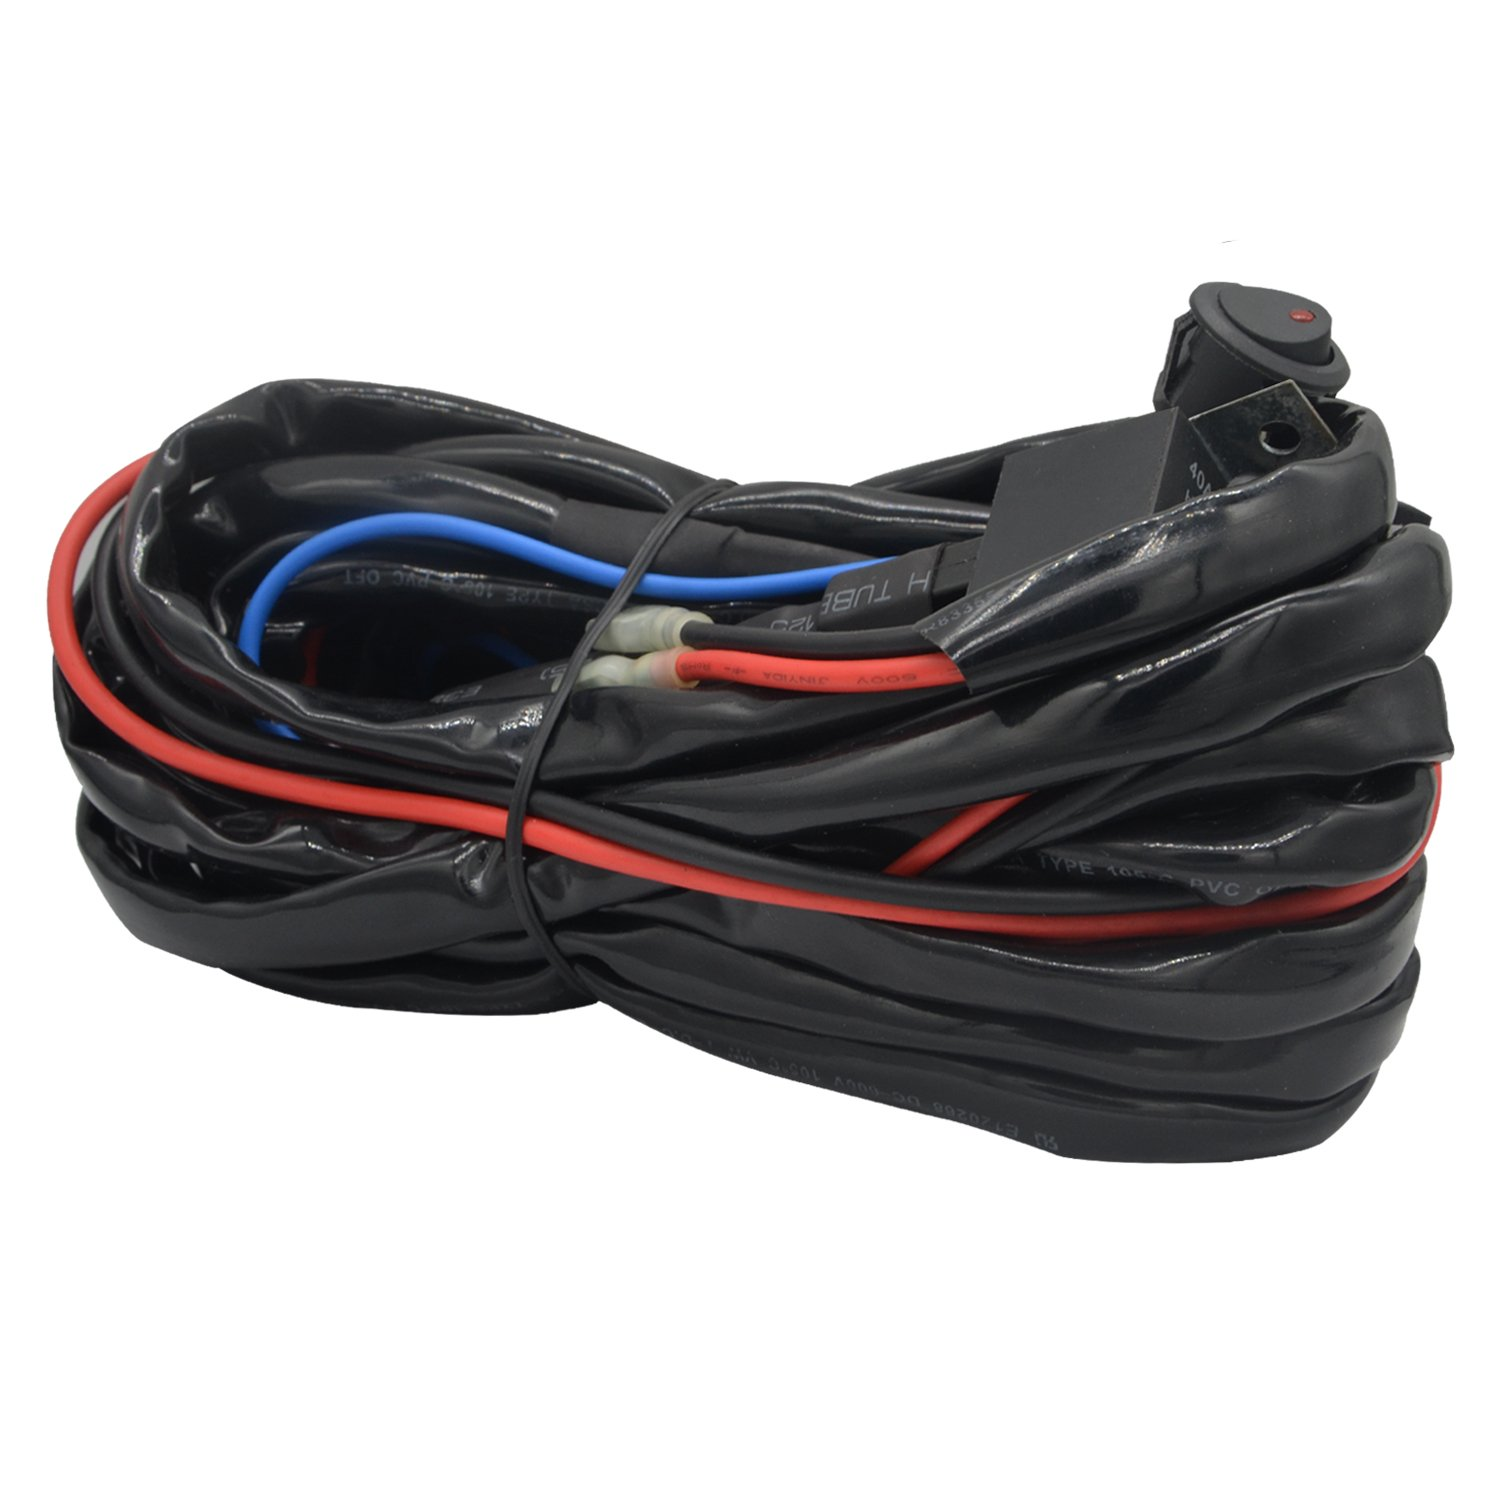 71hdbgsGjCL._SL1500_ amazon com wiring harnesses electrical automotive 2015 audi q7 trailer wiring harness at sewacar.co